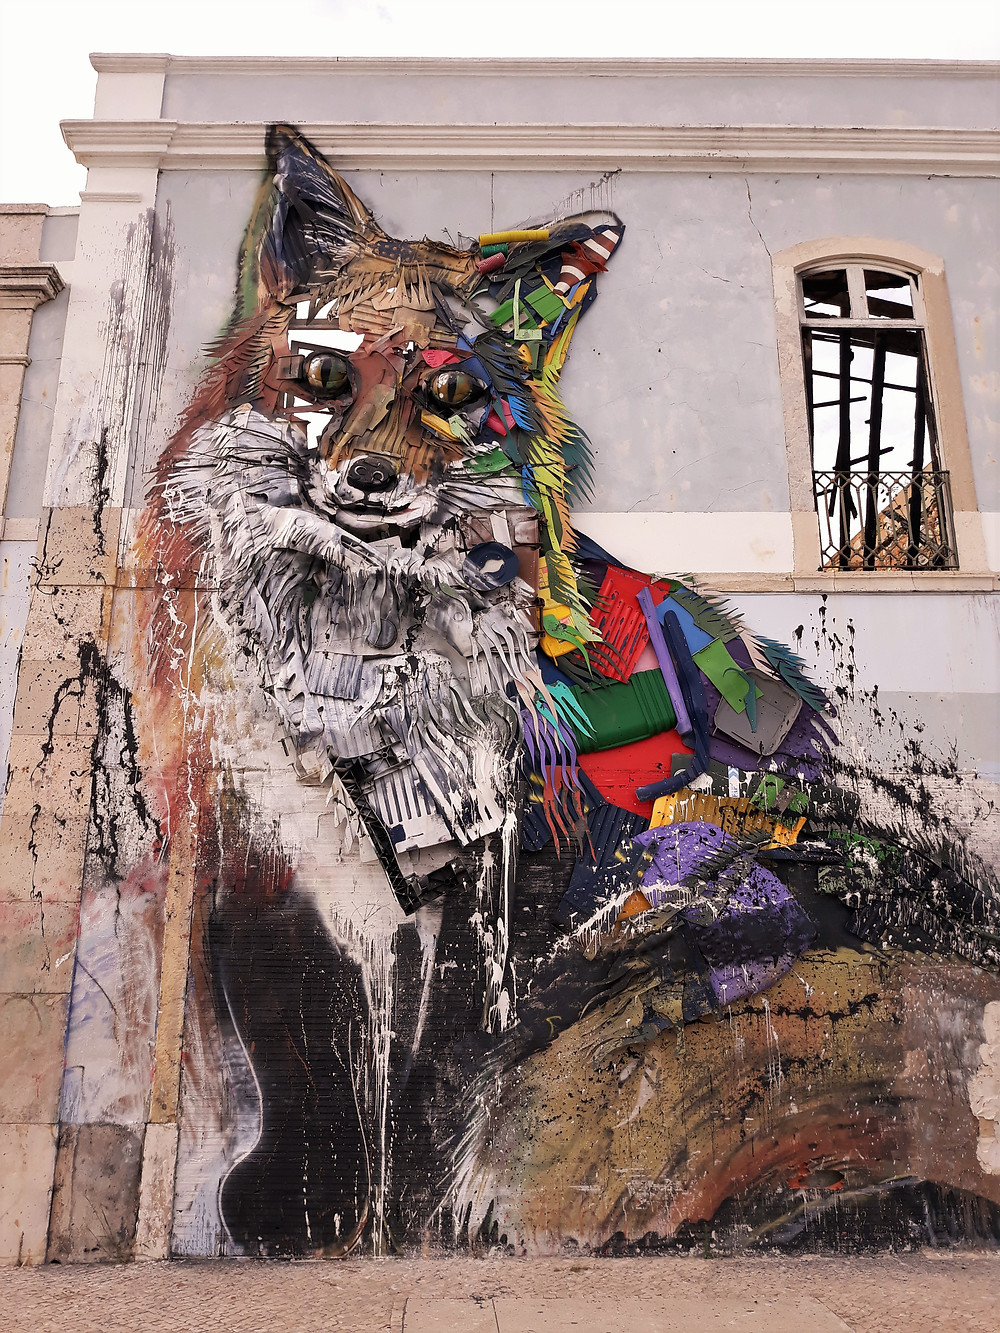 2017- Half fox installation by Bordalo II- Cais do Sodre, Lisbon - Picture taken by Artrootz